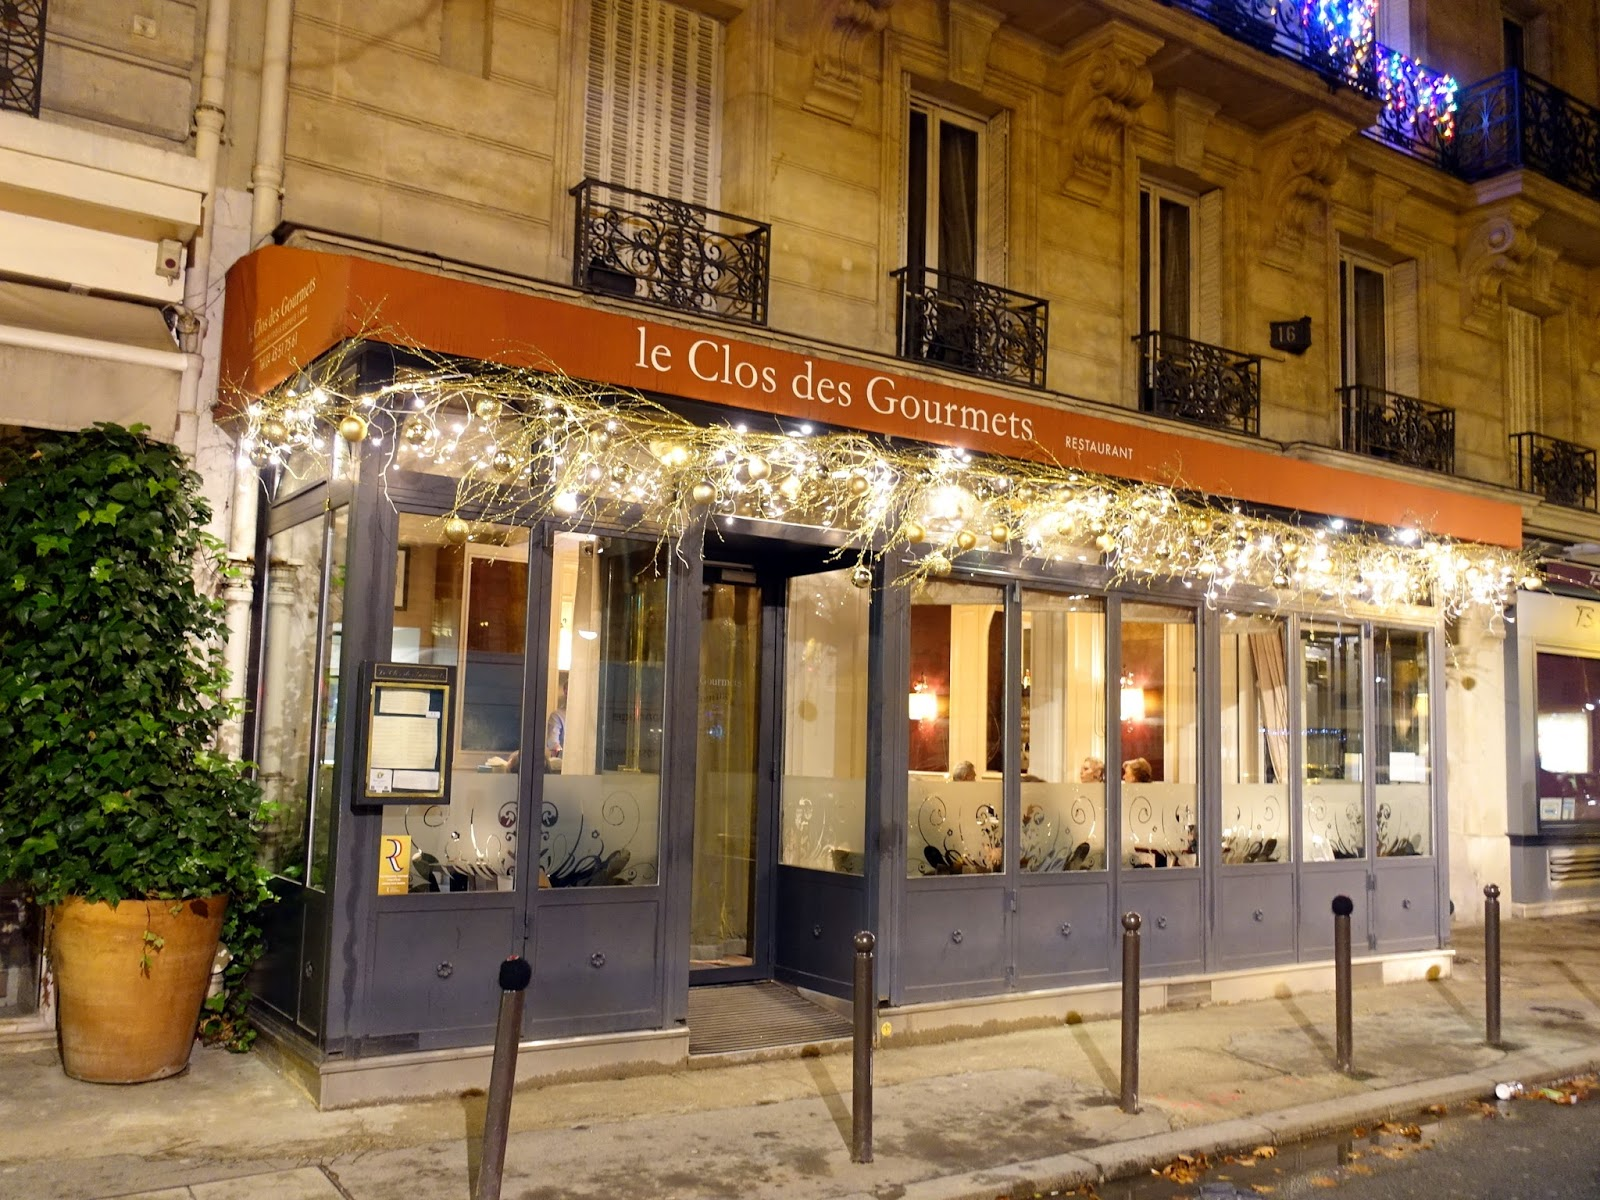 Le Clos Des Gourmets Paris France A Traveling Foodie S Gastronomic Diary From Around The World